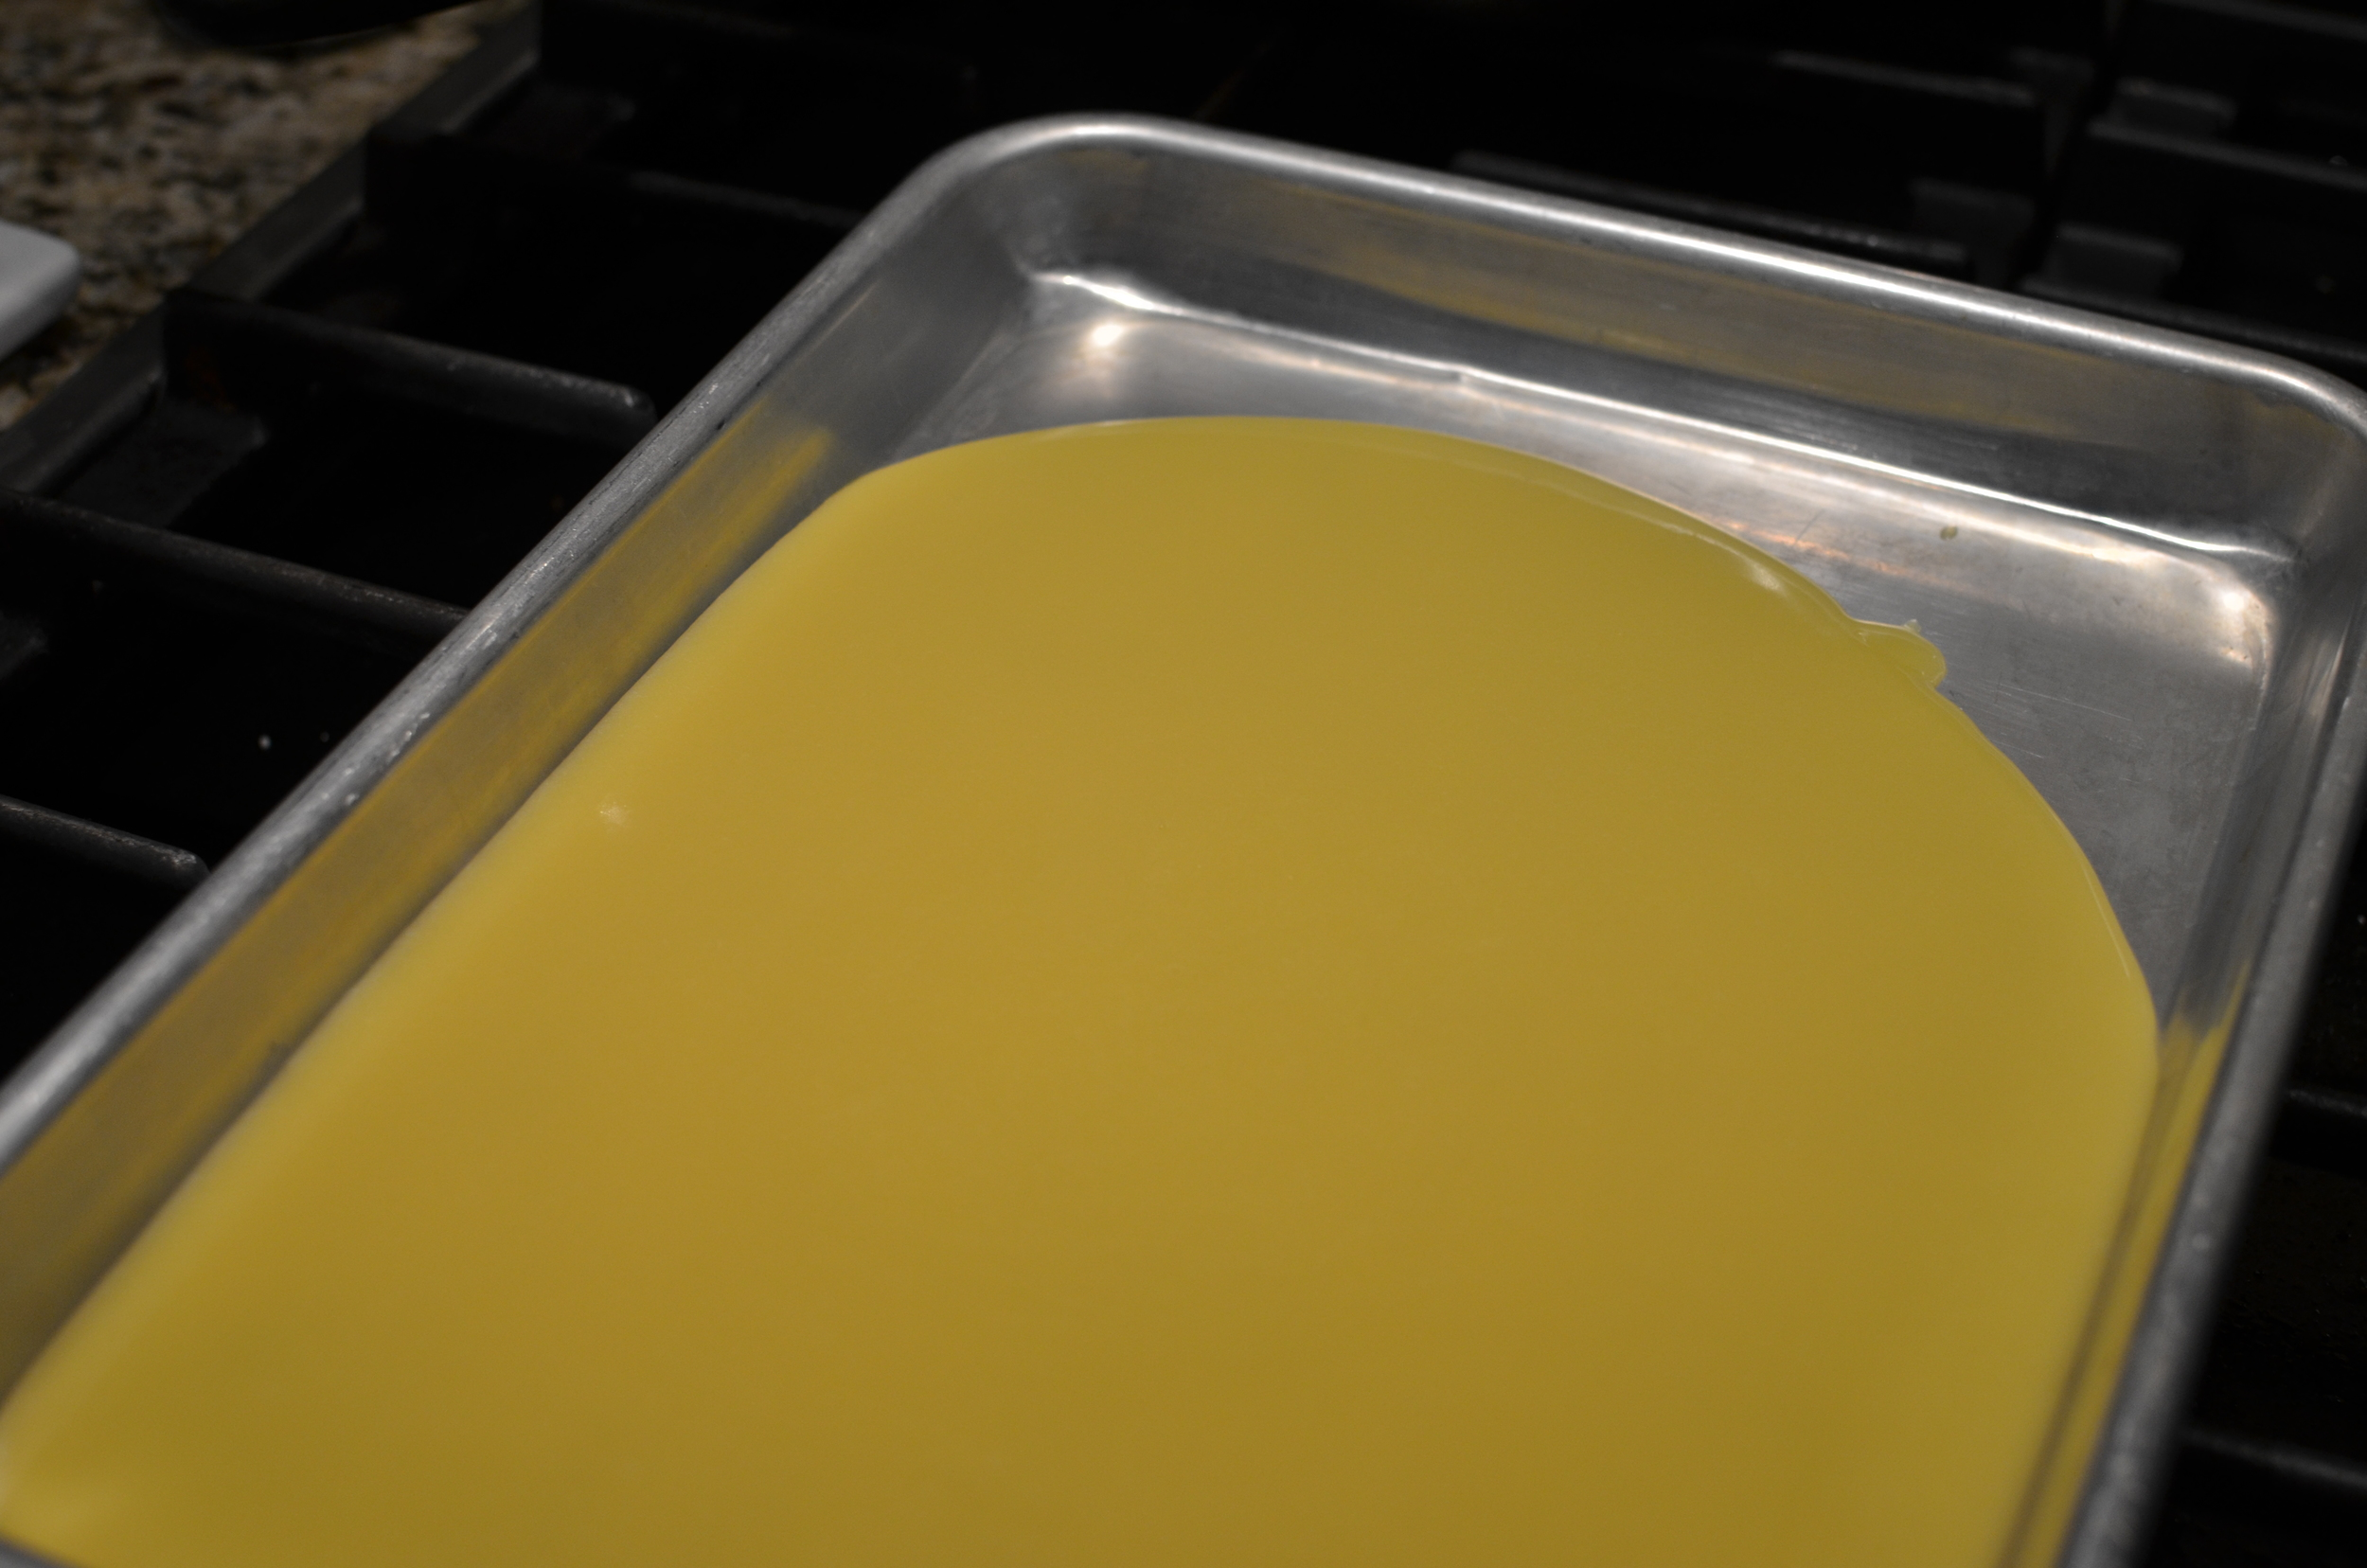 The more shallow the container, the faster the custard will cool.